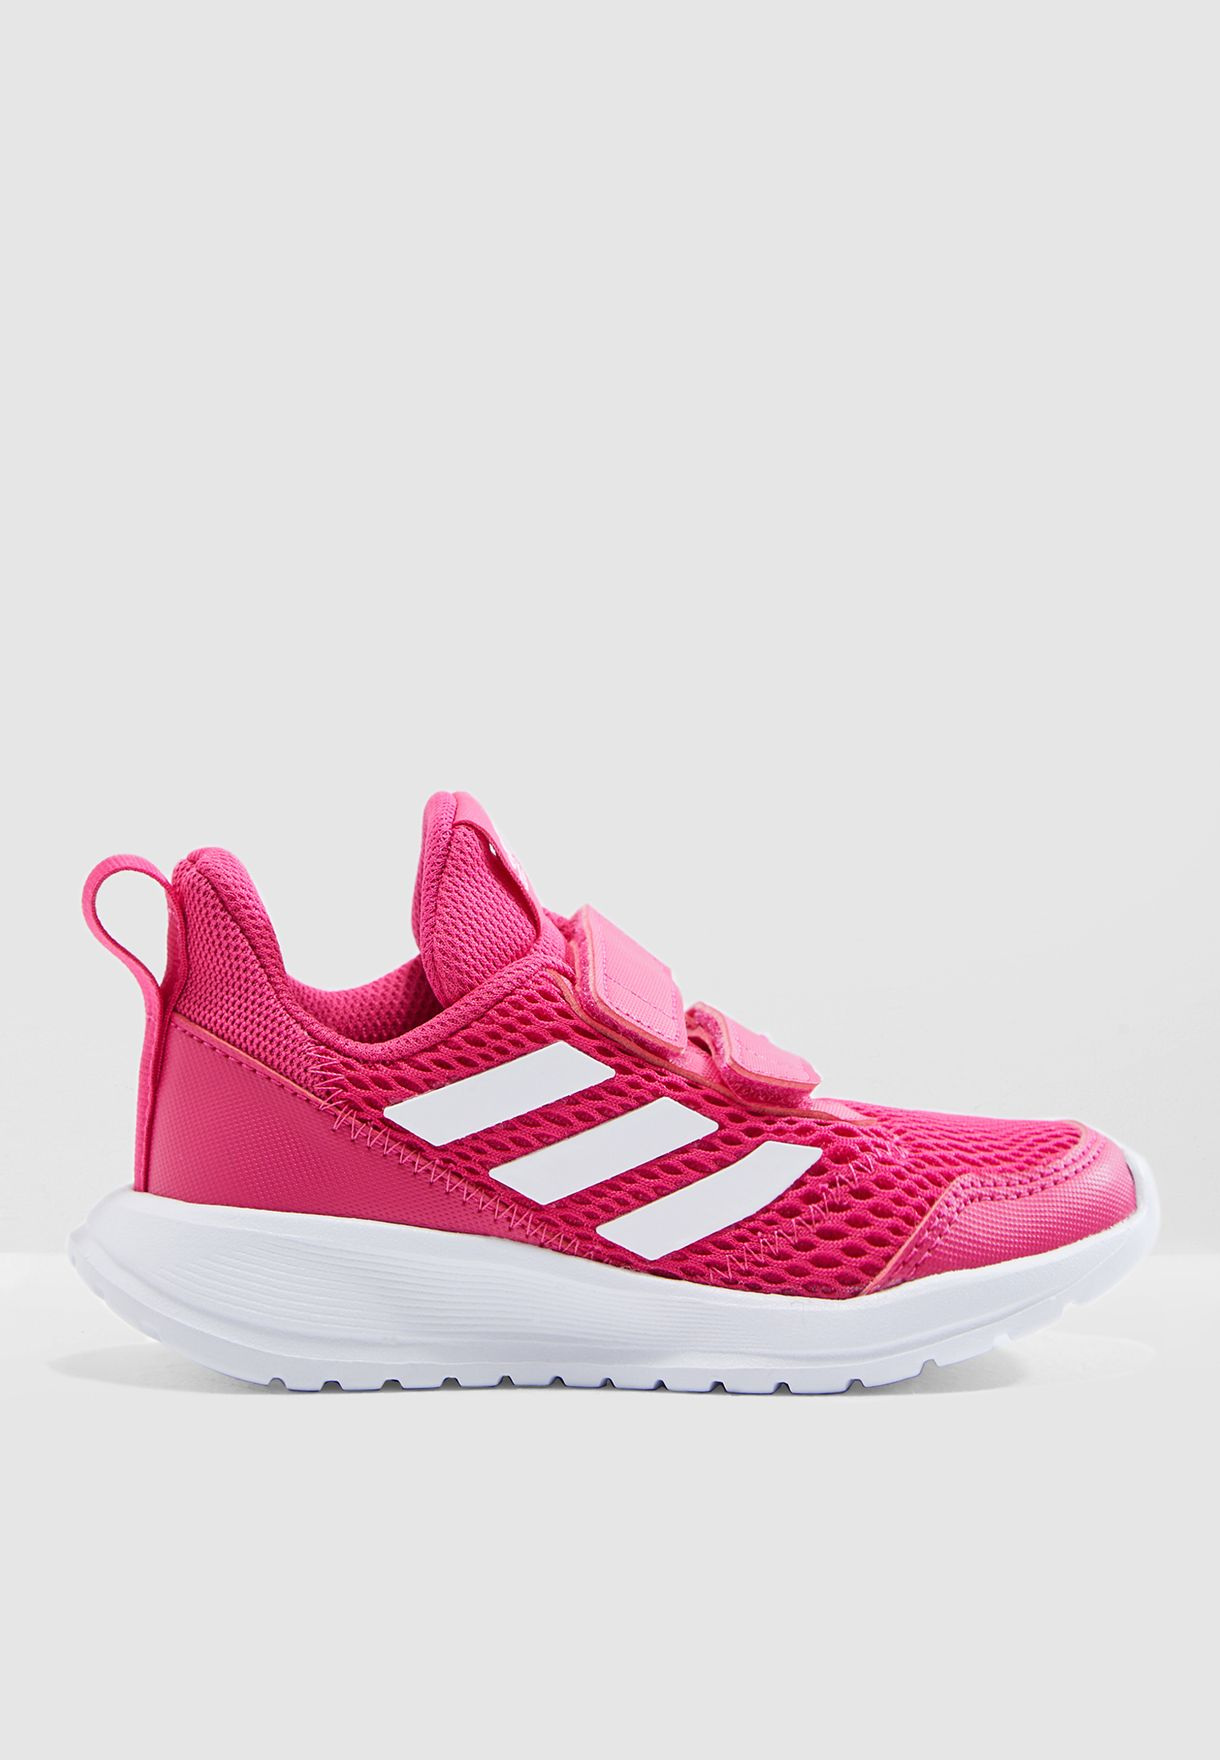 low priced efa2f e6890 Shop adidas pink Kids AltaRun CF CG6895 for Kids in UAE - AD